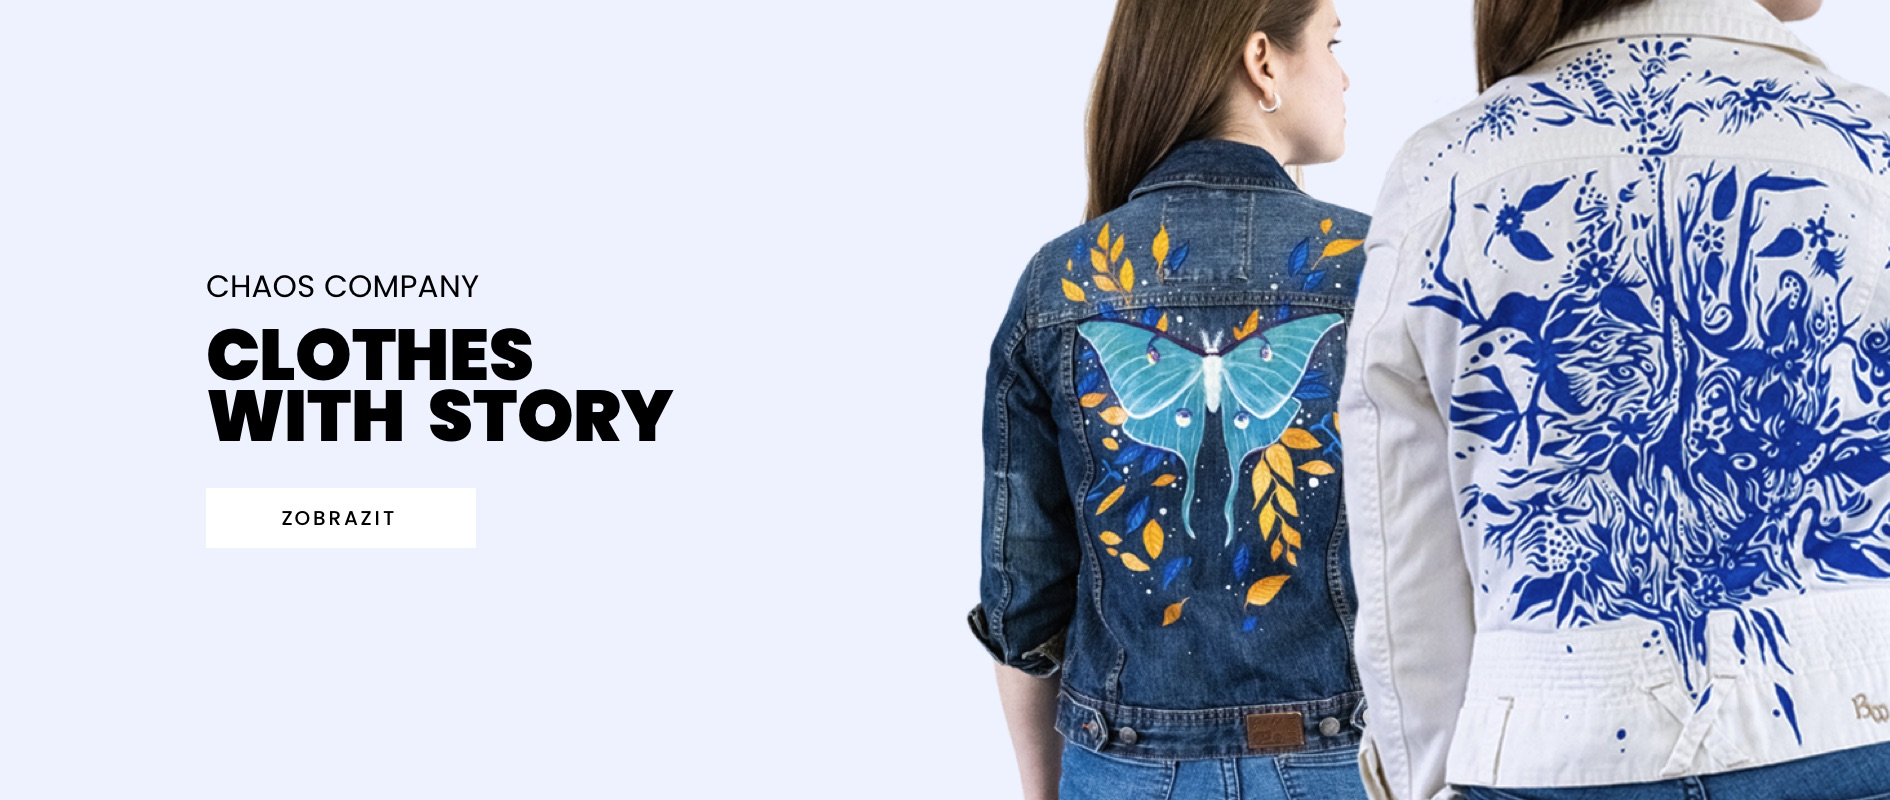 Clothes with story by Chaos company